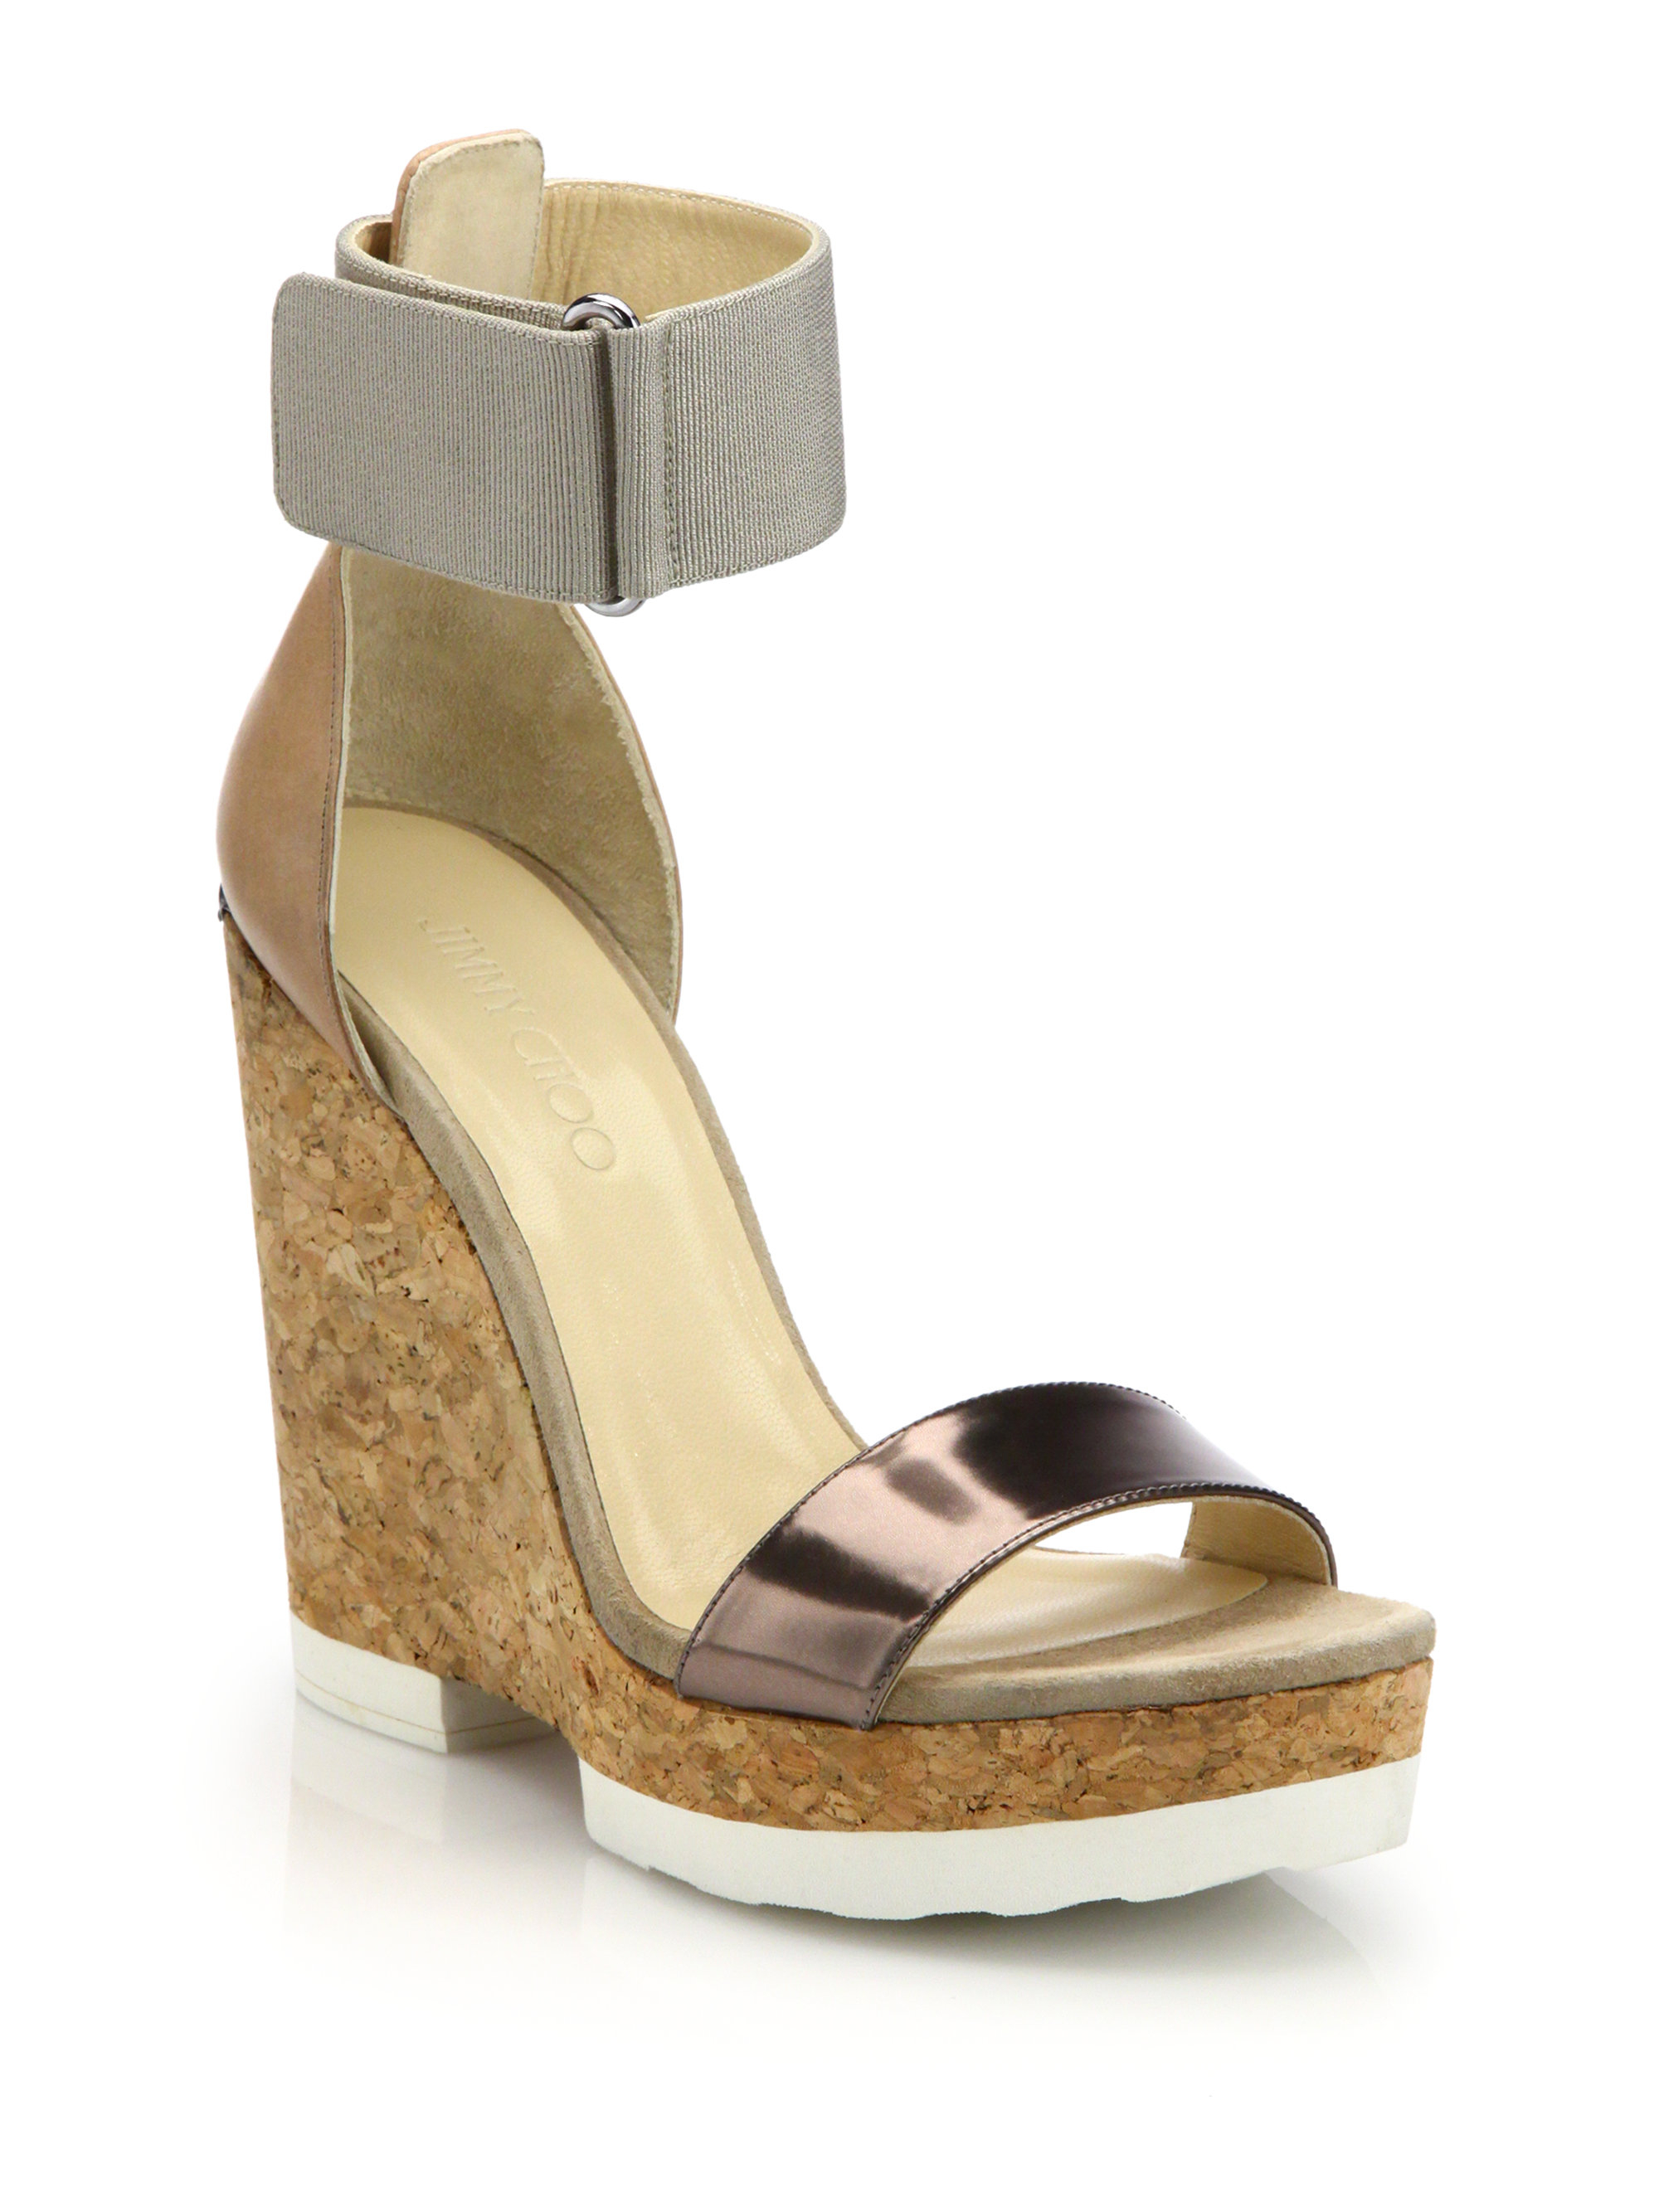 Jimmy Choo Metallic Canvas Sandals discount purchase discount supply pujq0By